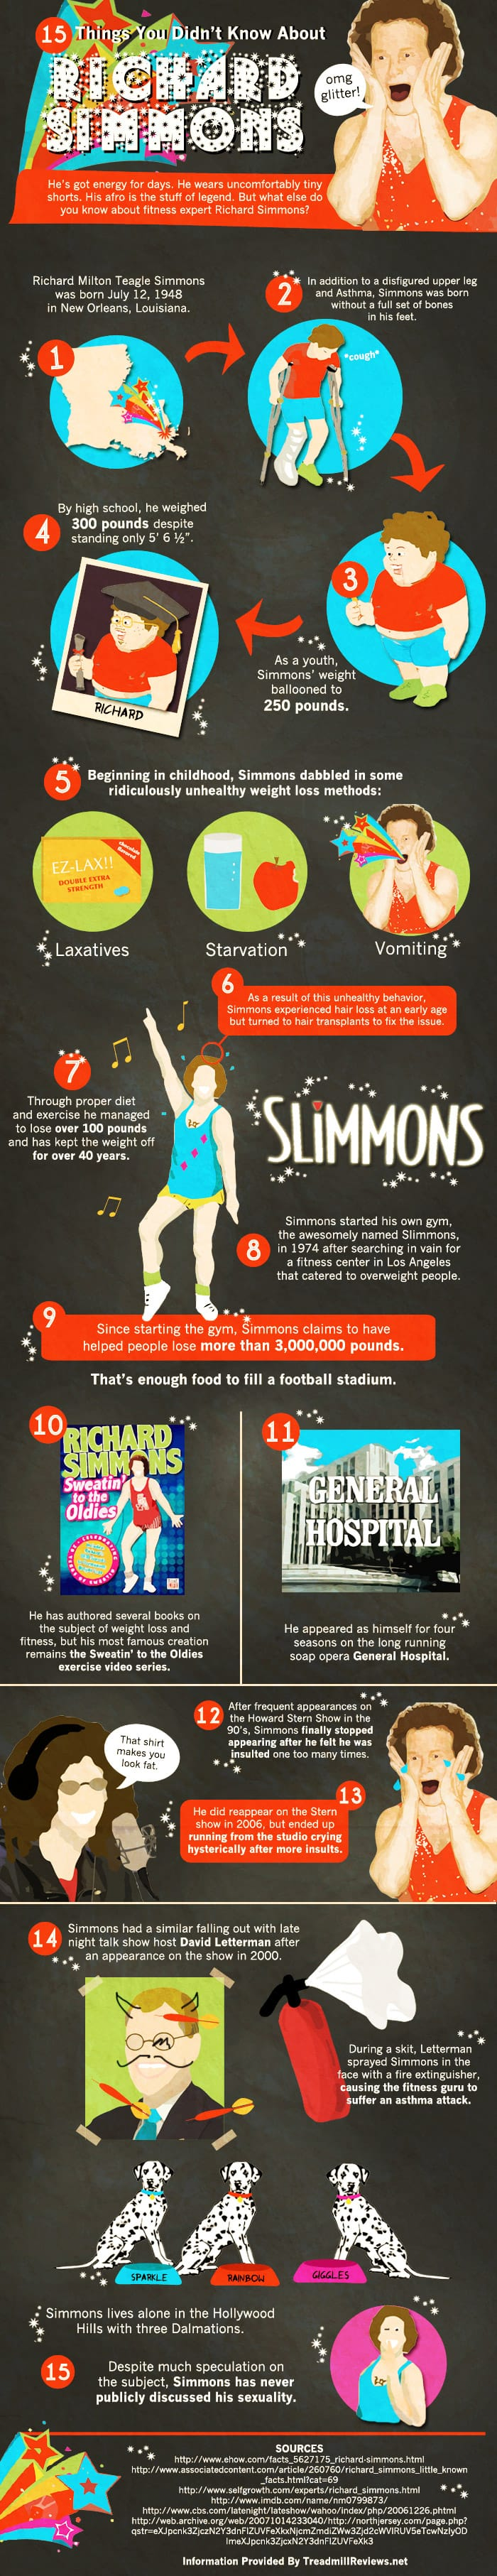 15 Facts About Richard Simmons you Douchebags